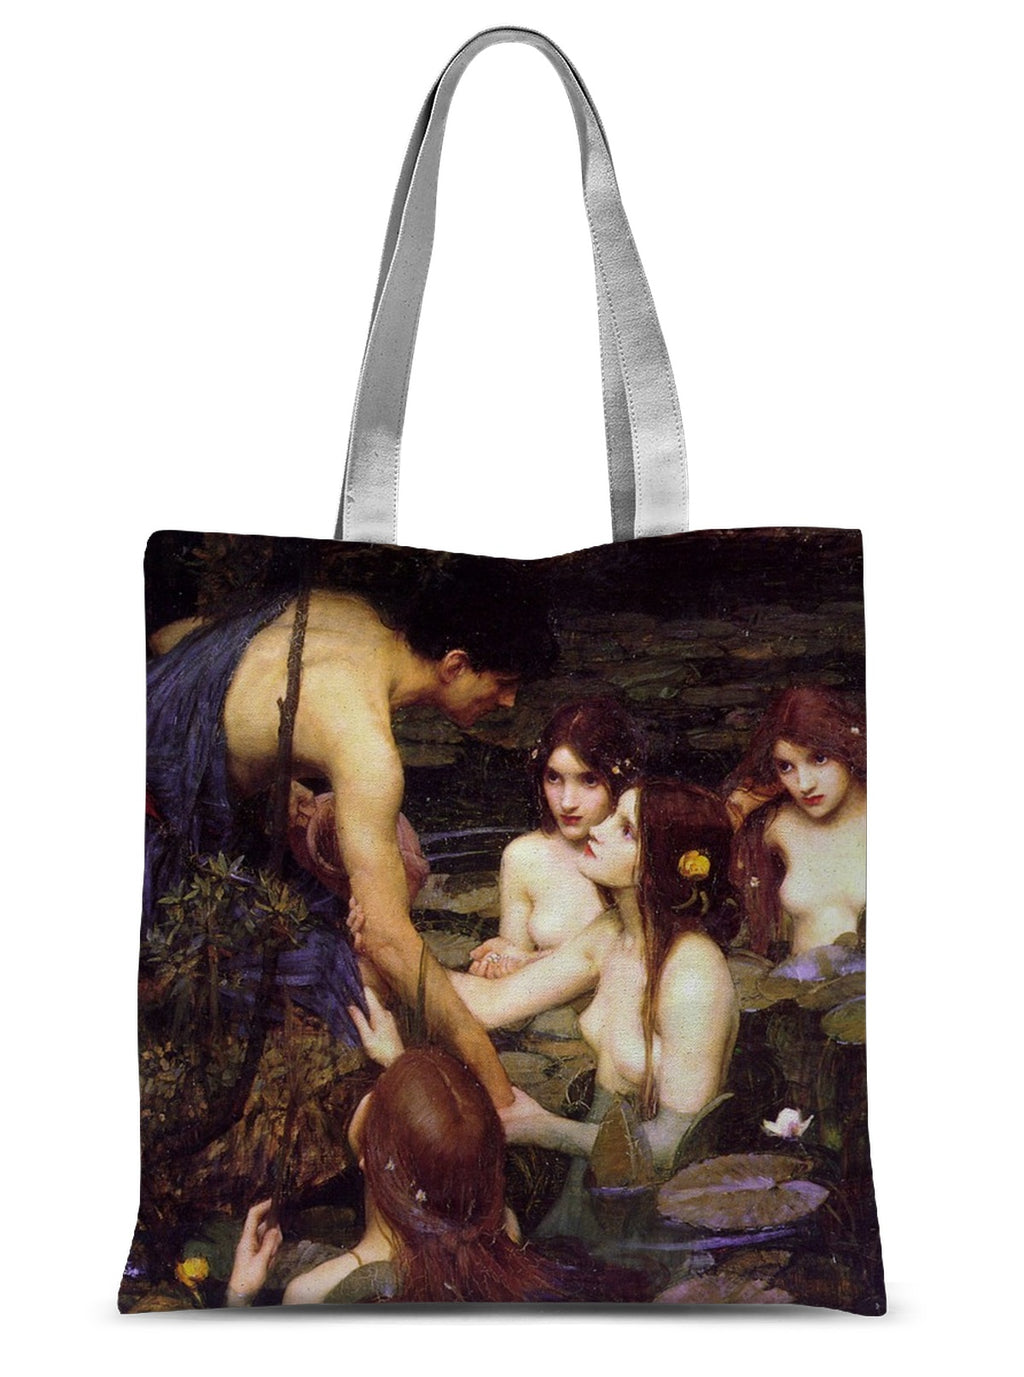 Hylas and the Nymphs  by John William Waterhouse Sublimation Tote Bag